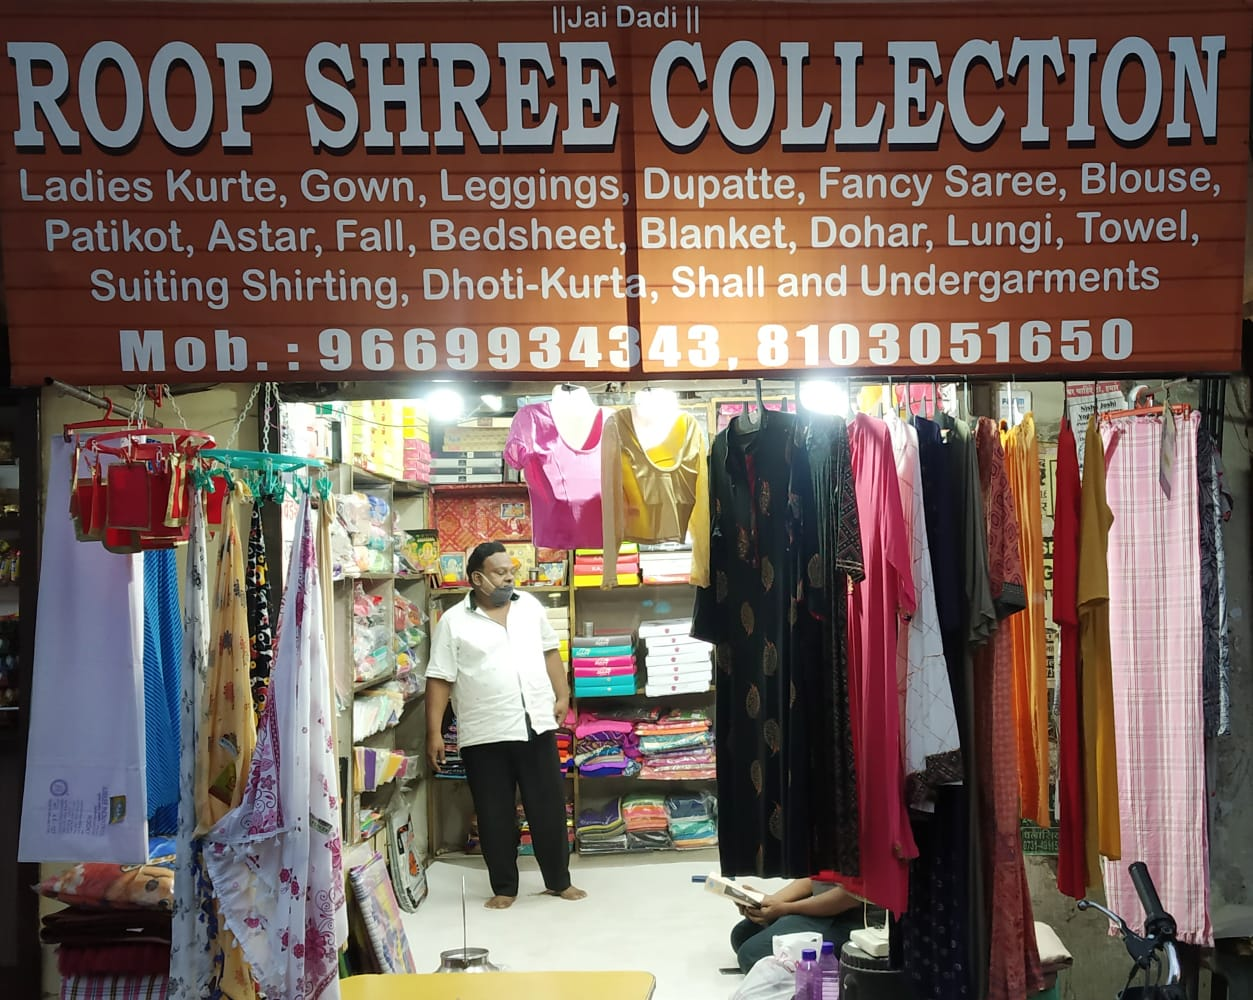 ROOP SHREE COLLECTION